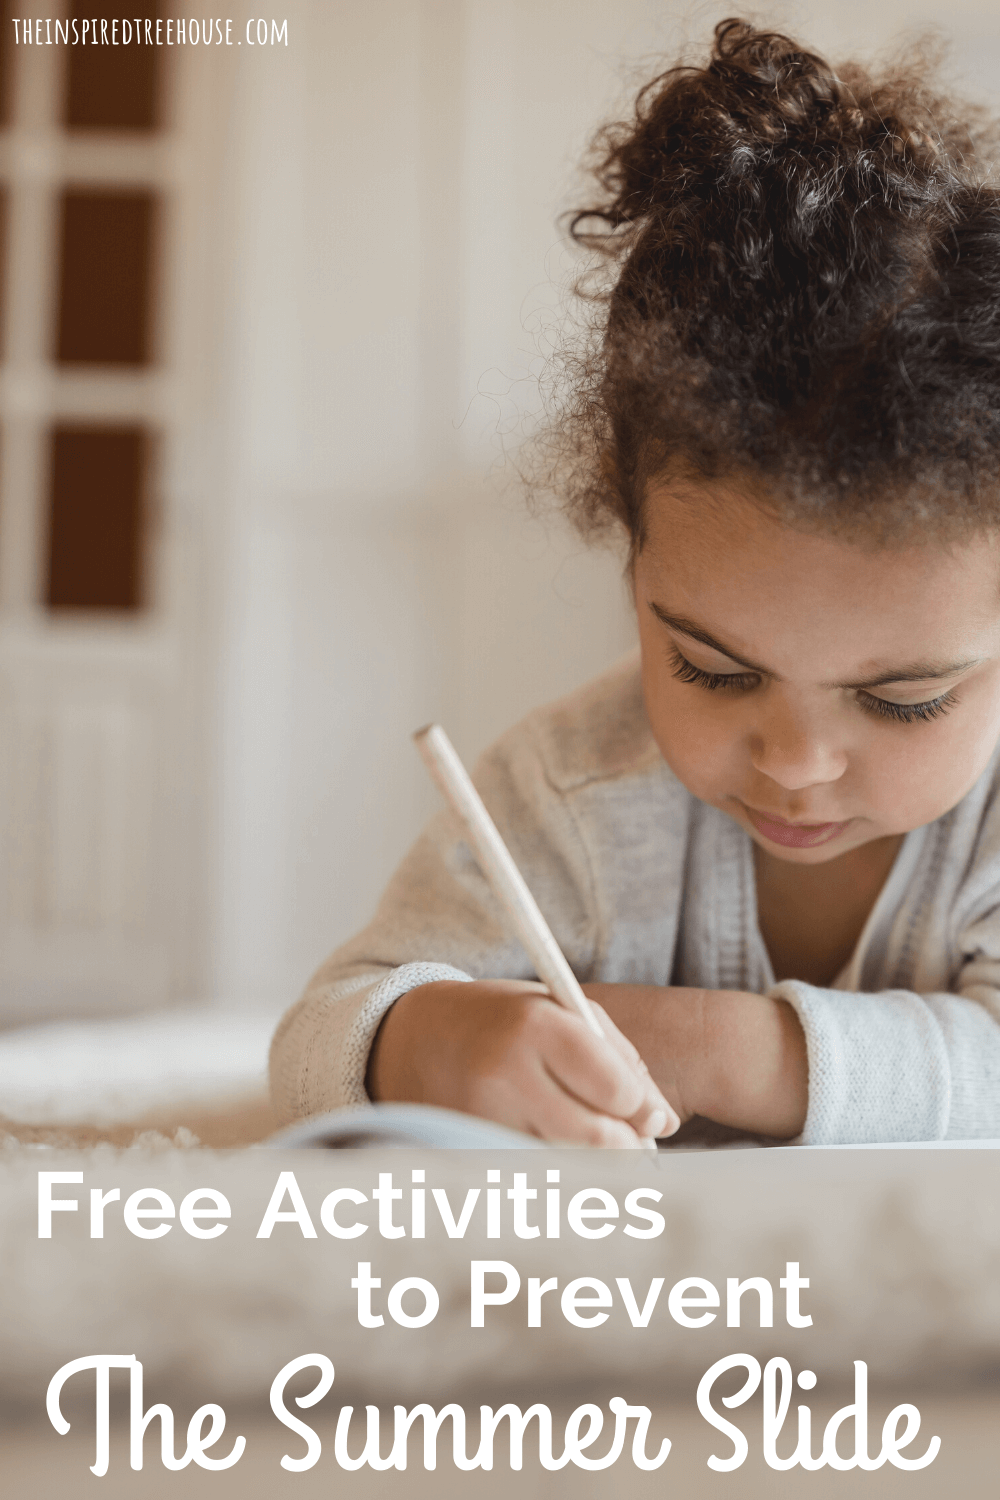 The Inspired Treehouse - Looking for fun and creative ideas to prevent the summer slide and keep kids active, learning and engaged to prepare for school? We've got you covered!